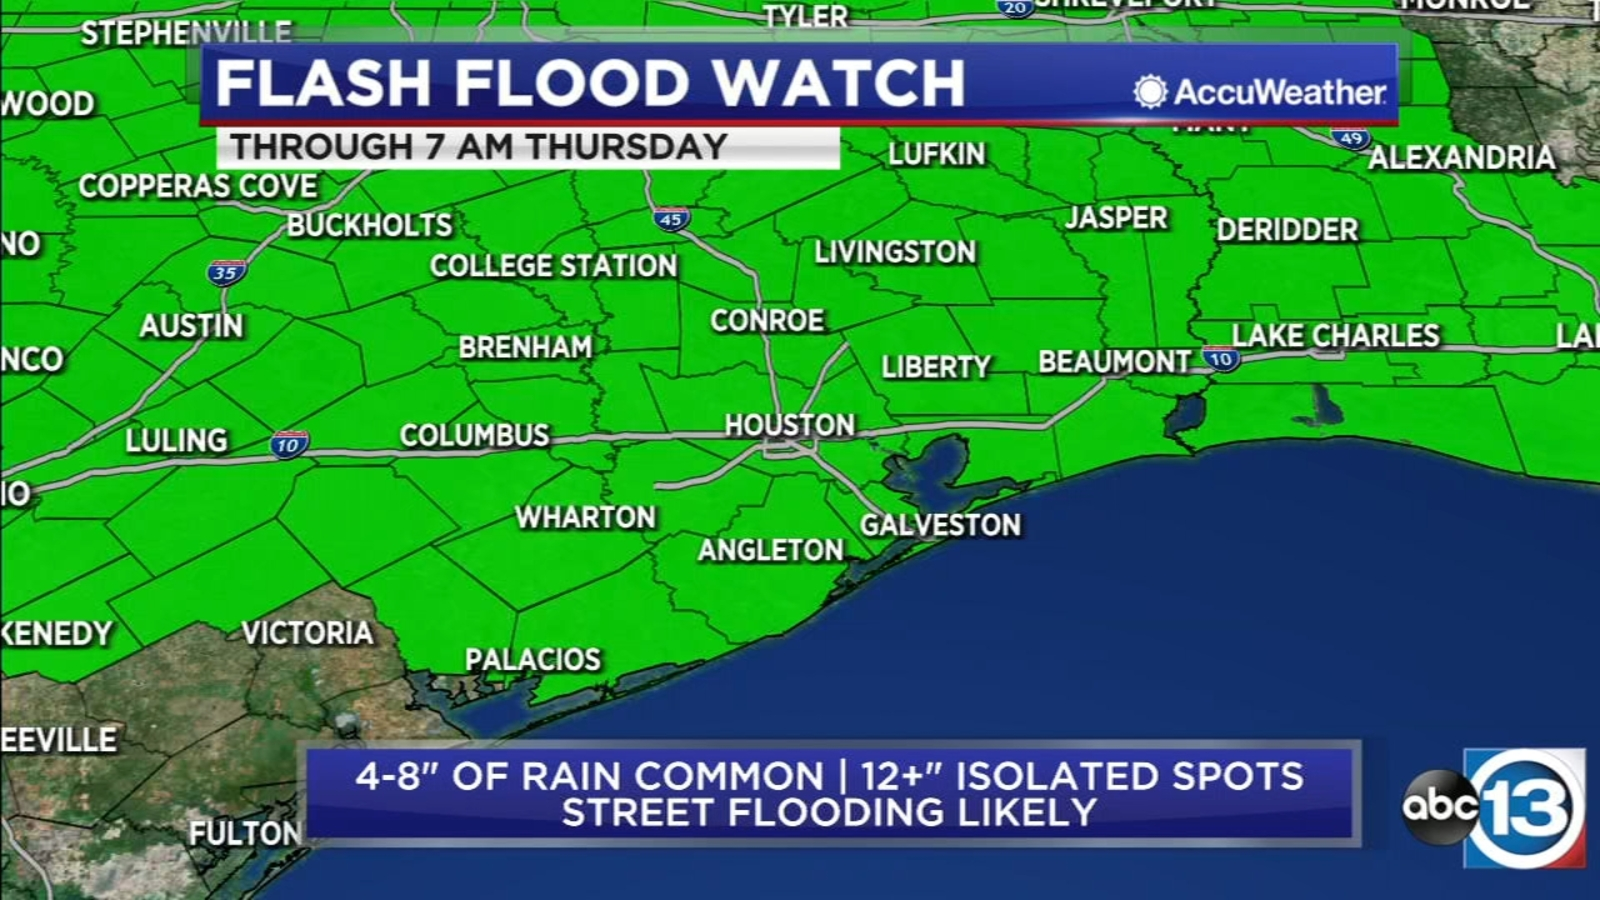 Flash Flood Watch: Here's how much rain you could get